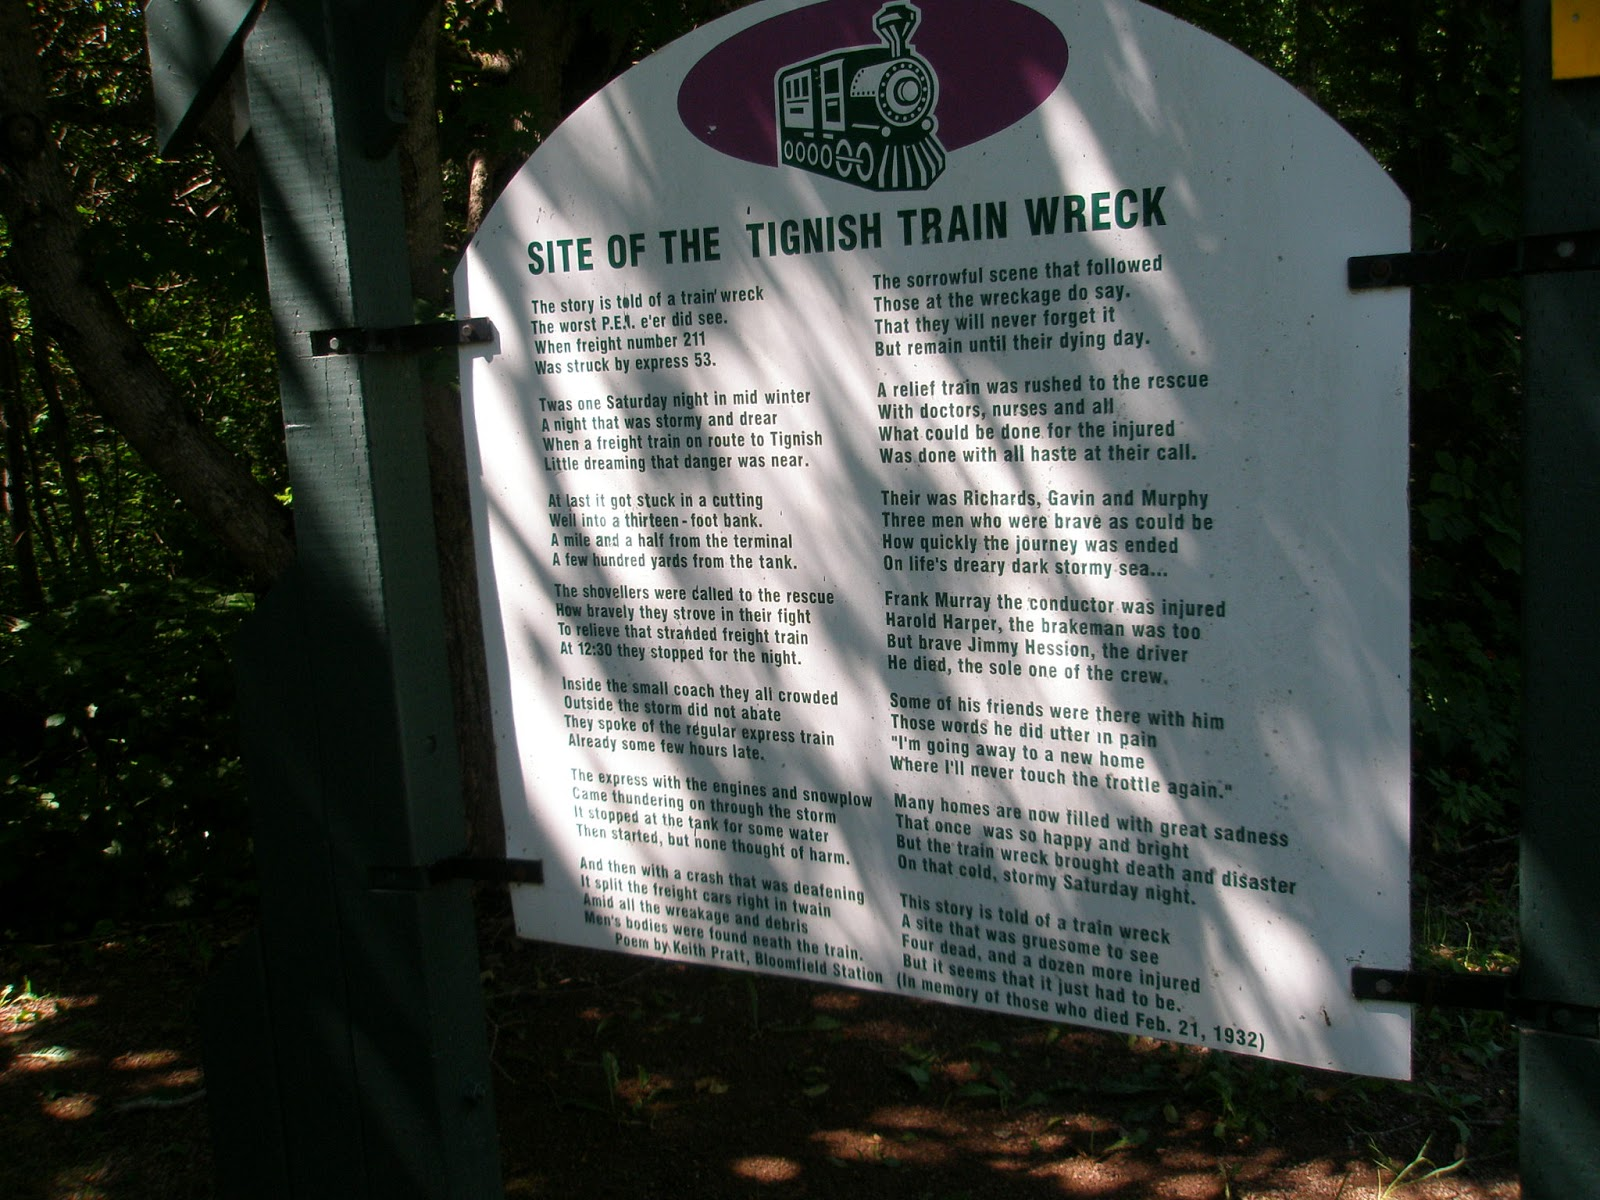 Pedaling PEI: Train wreck